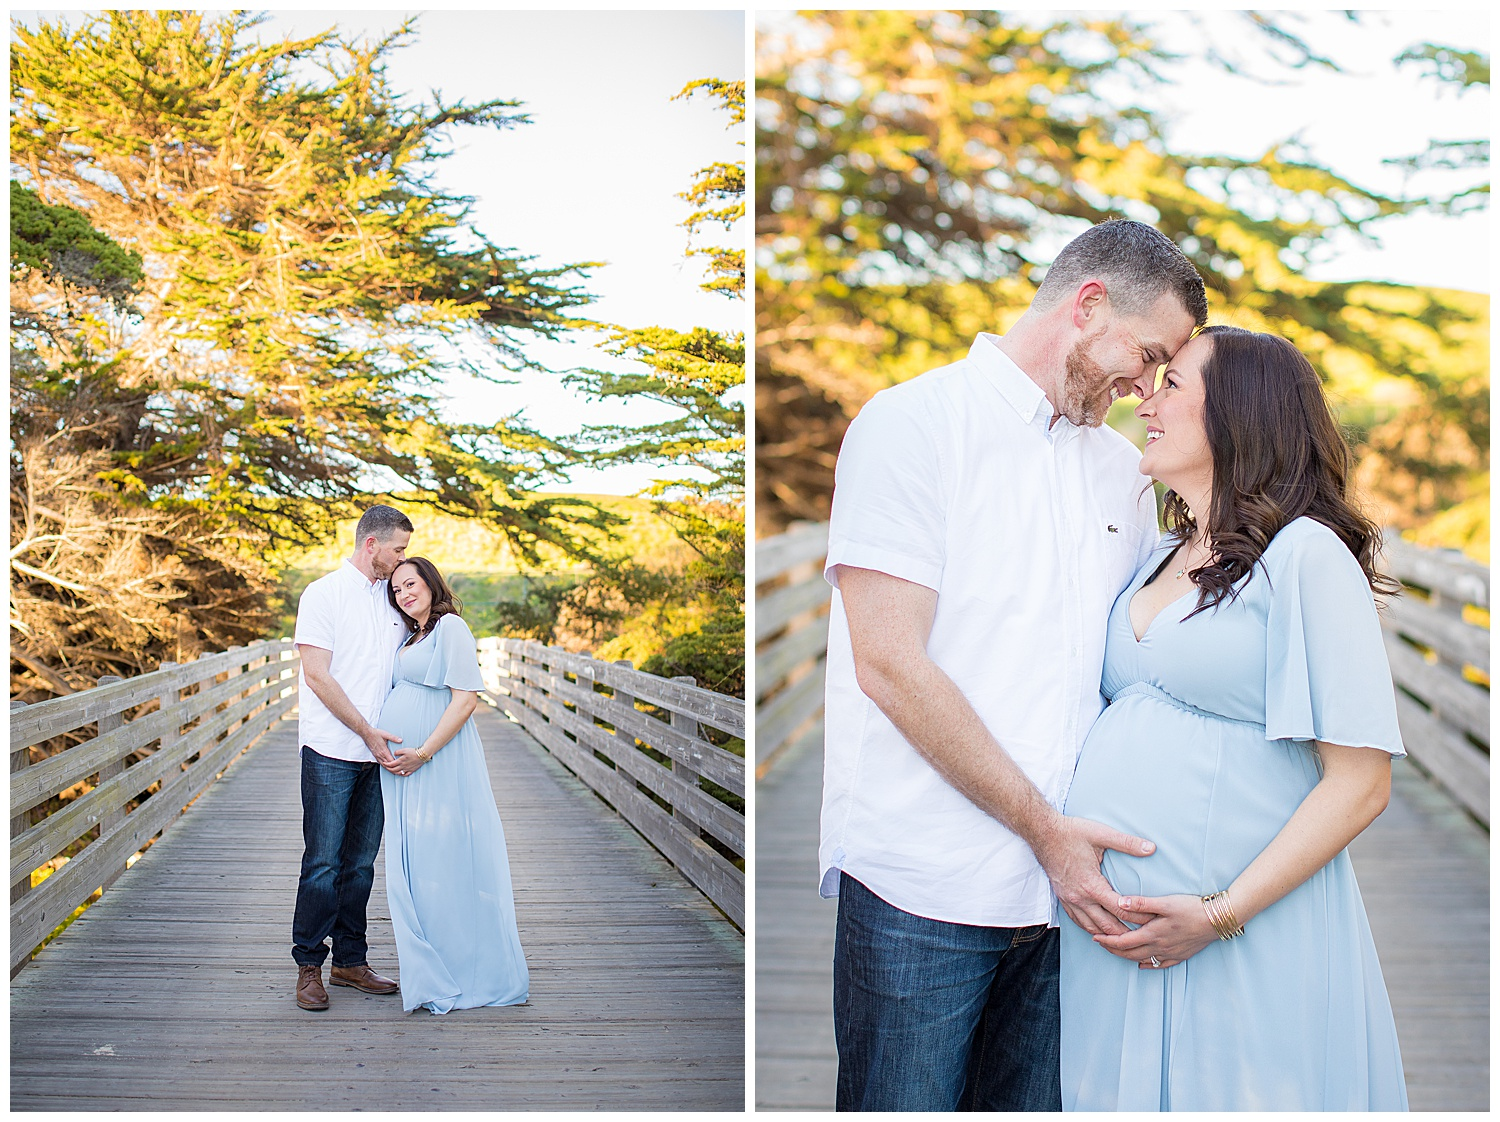 bayarea-maternity-photography-01.jpg